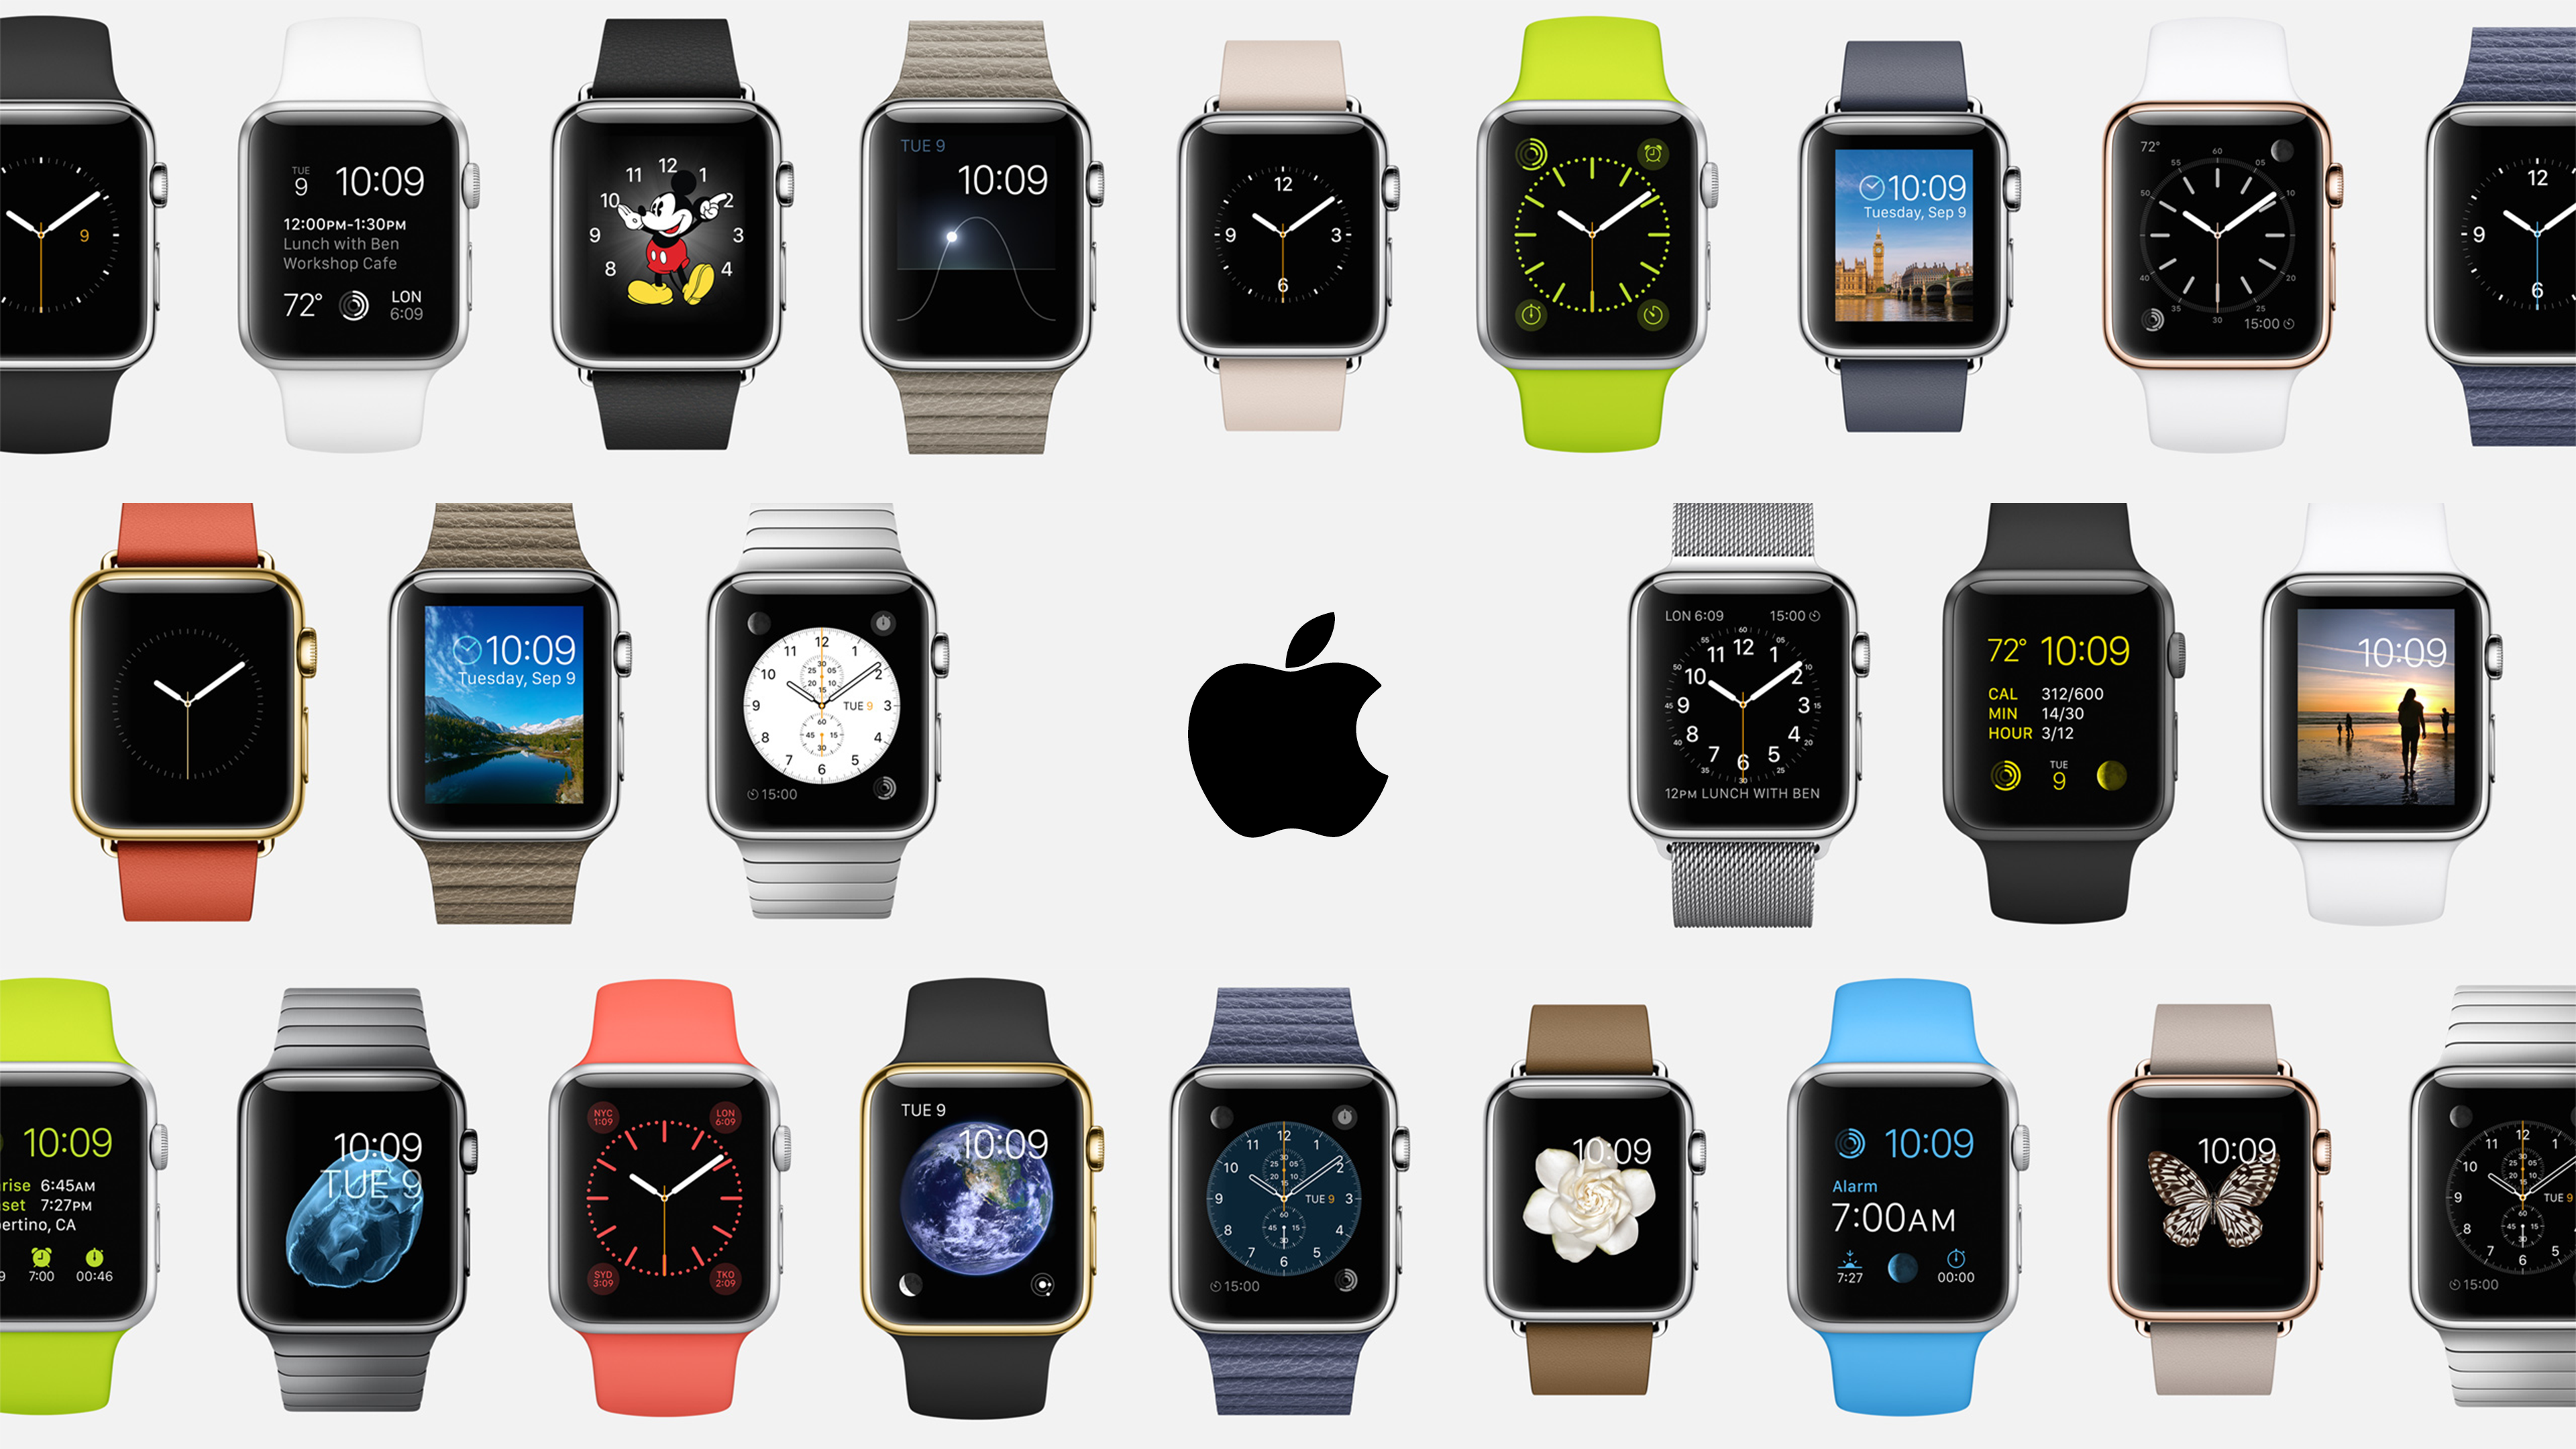 watch_apple_watch_by_krystalserenity-d7ymtaz